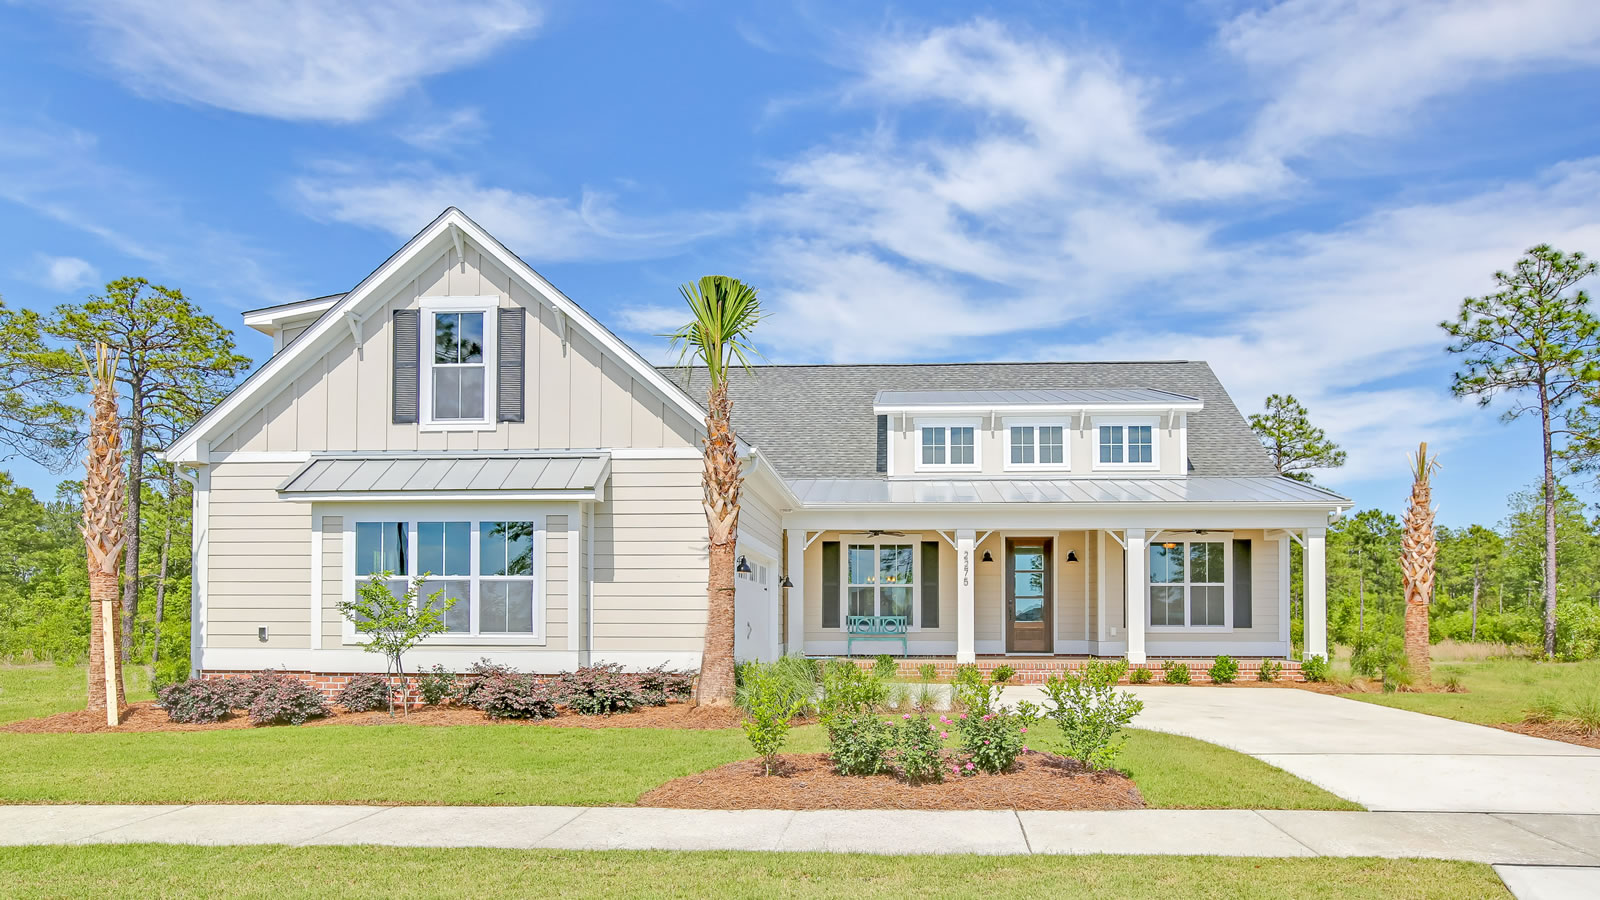 The Virginia by Legacy Homes by Bill Clark